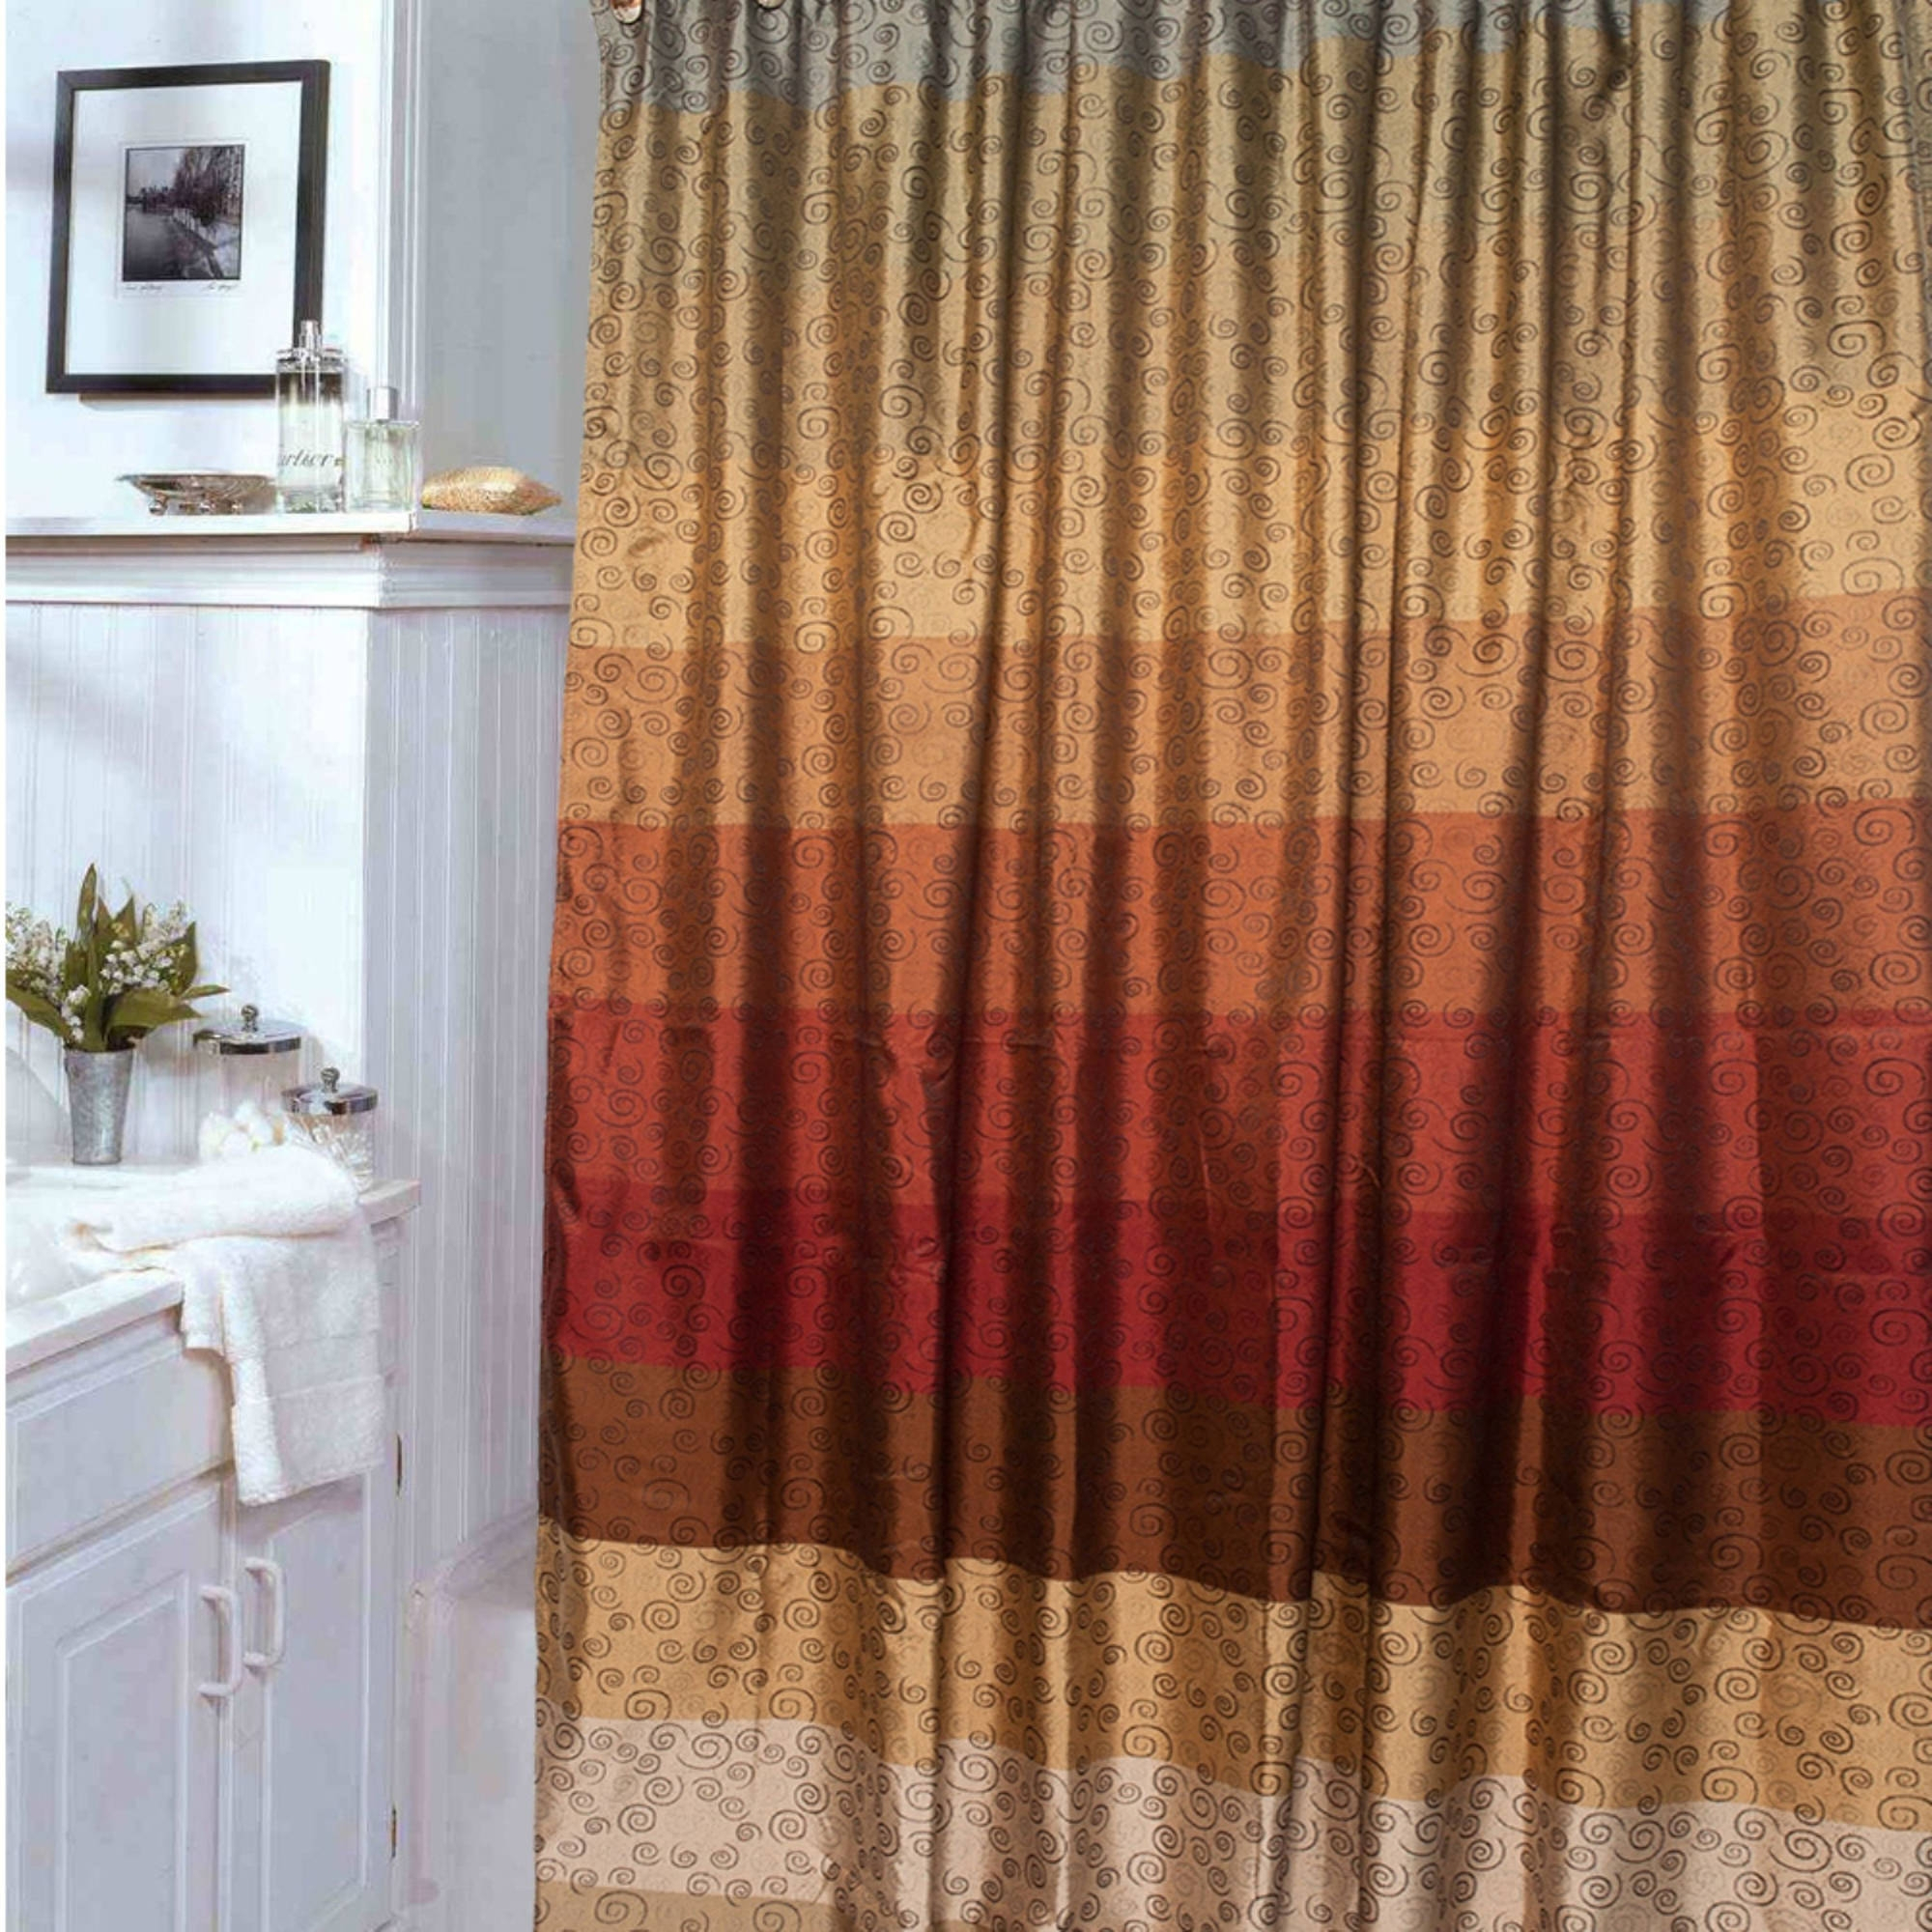 Curtain Ideas Brown And Orange Orange Things Ideas About: Solid Burnt Orange Shower Curtain